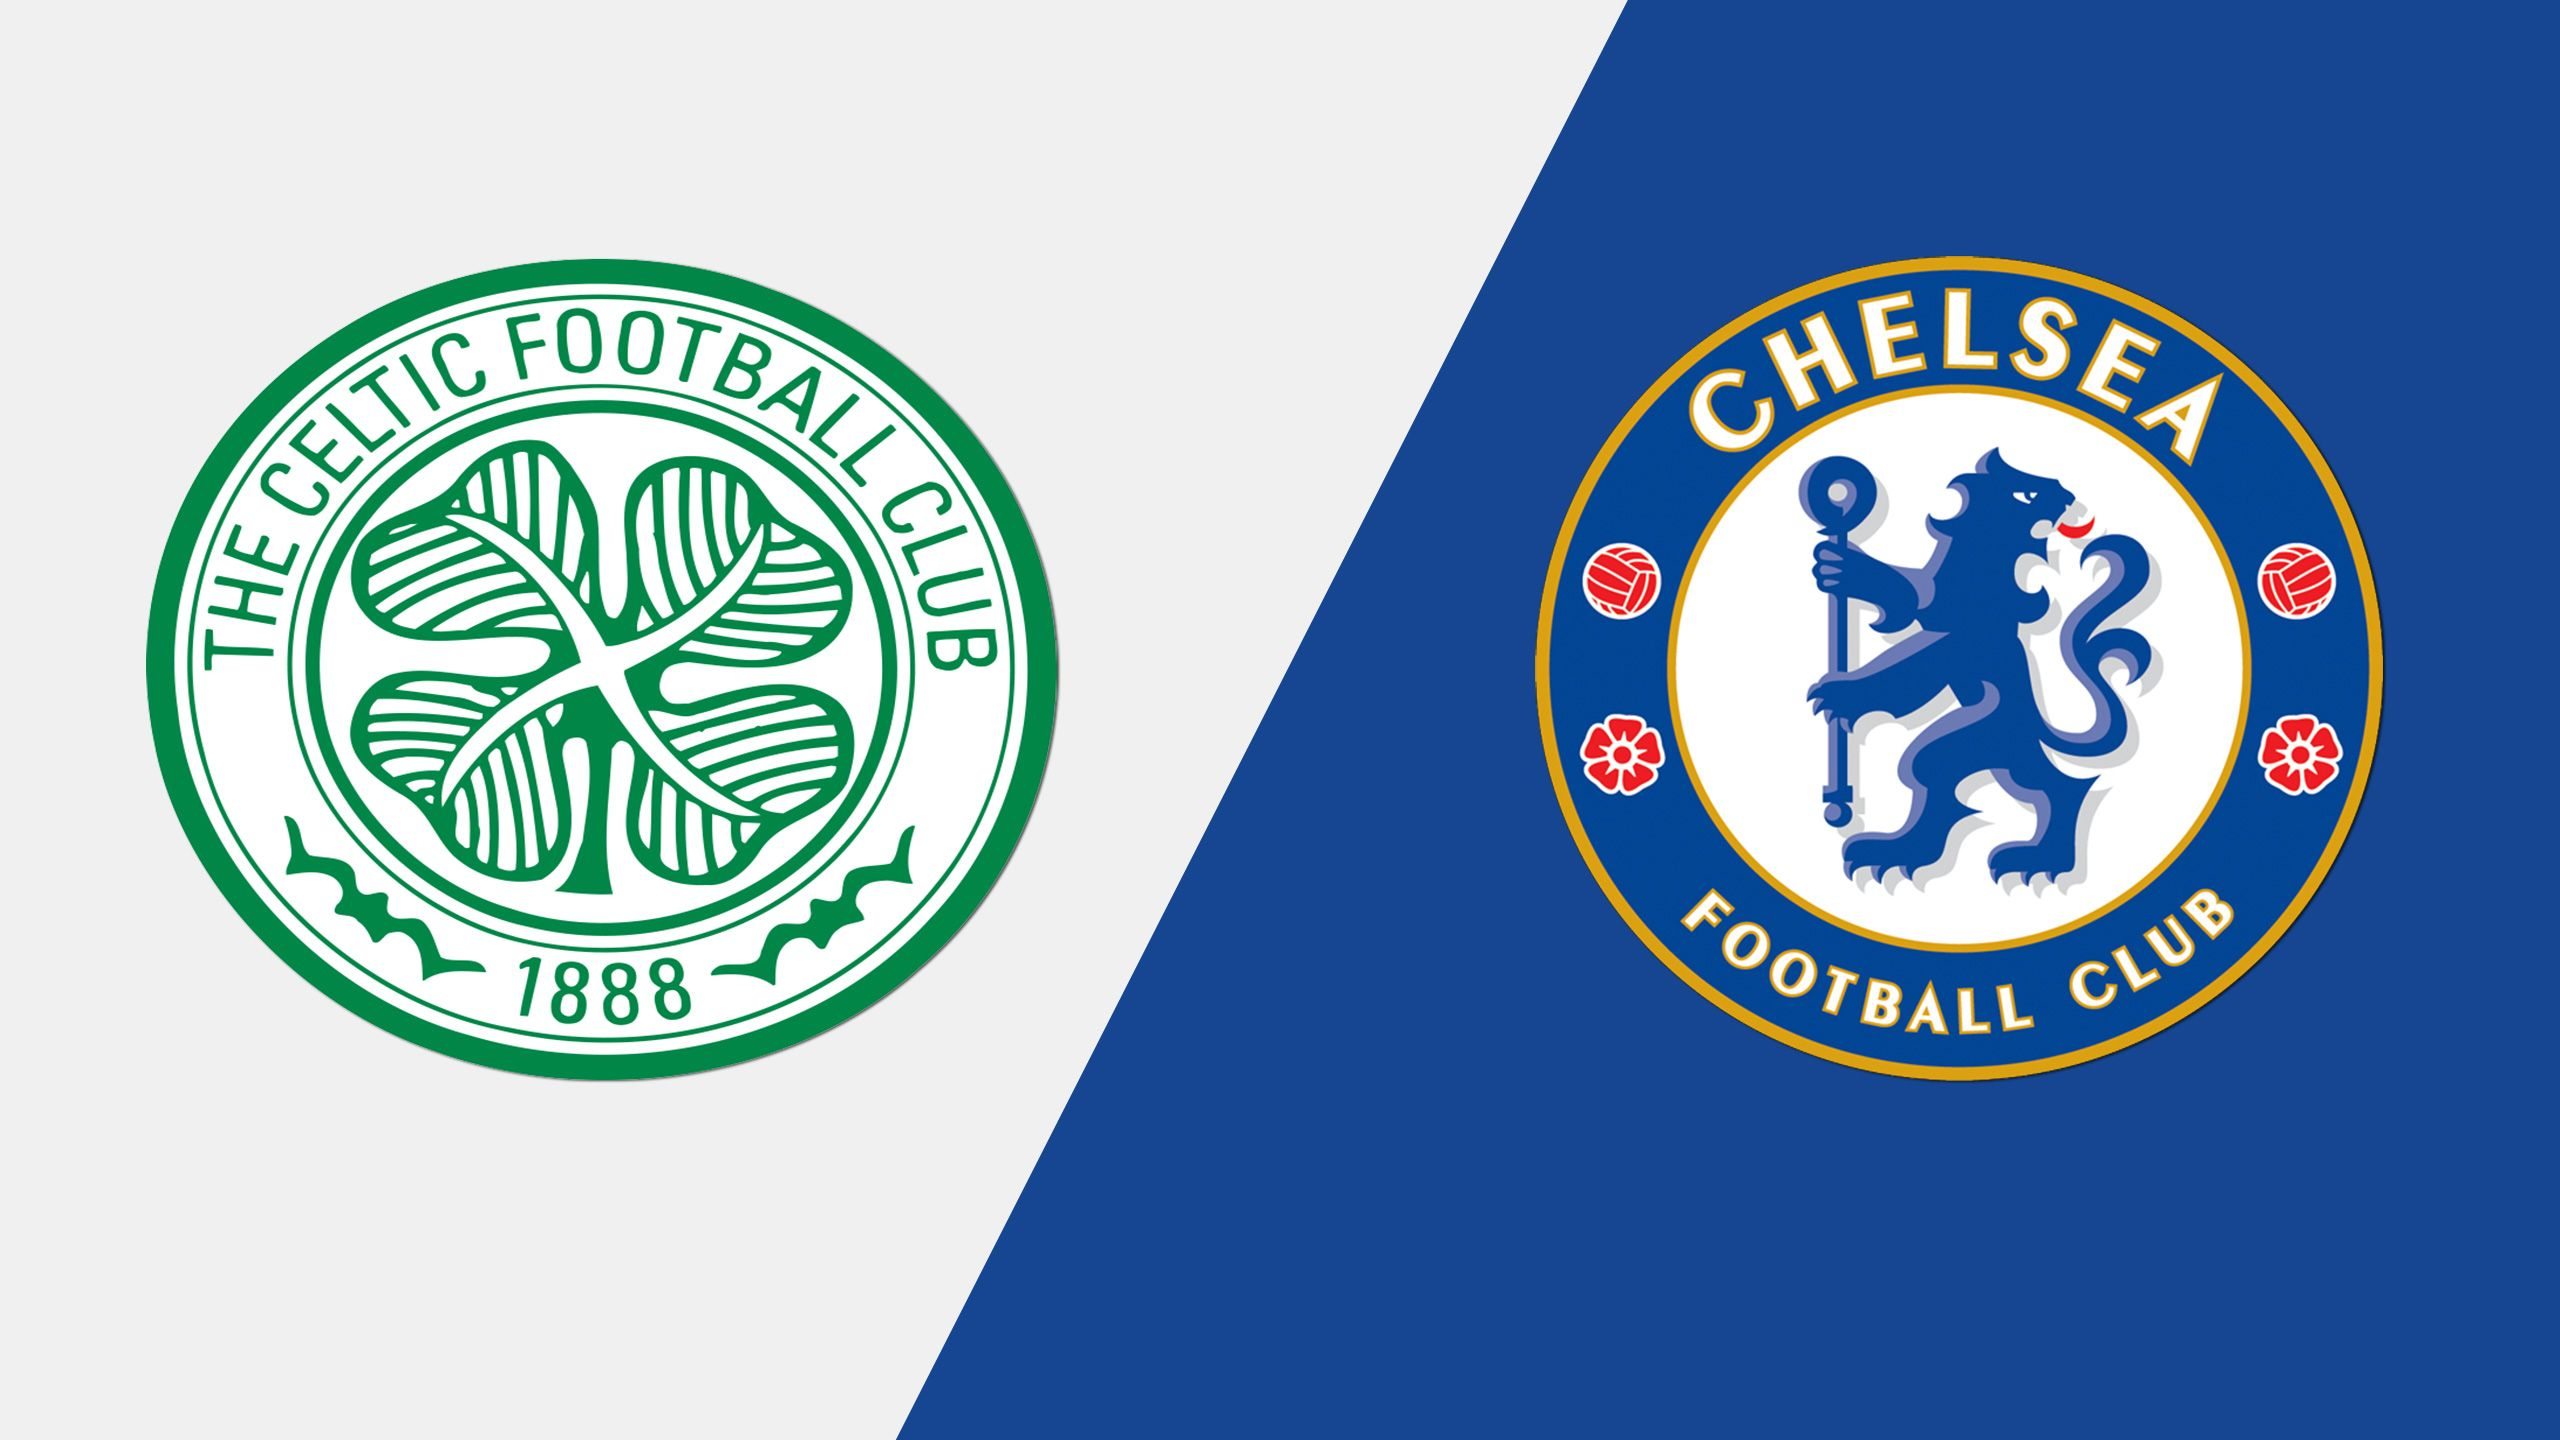 Celtic FC Under-14 vs. Chelsea FC Under-14 (Semifinal) (International Champions Cup Futures)